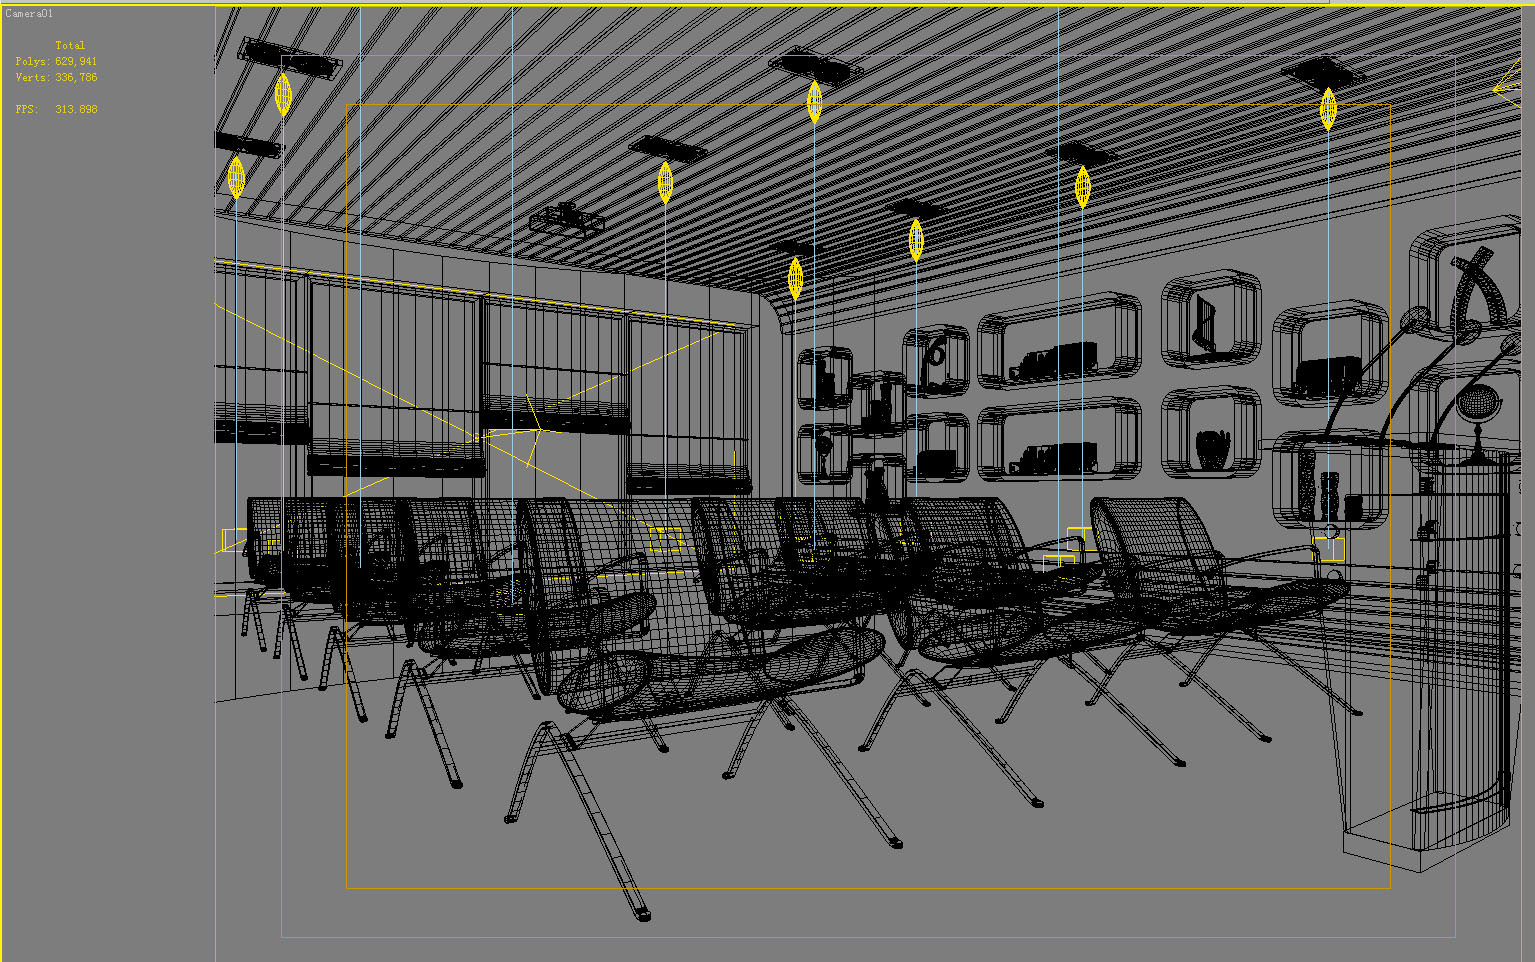 classy chair logo design.  spacious conference room with classy chairs 3d model max 2 Spacious Conference Room Classy Chairs 3D MAX